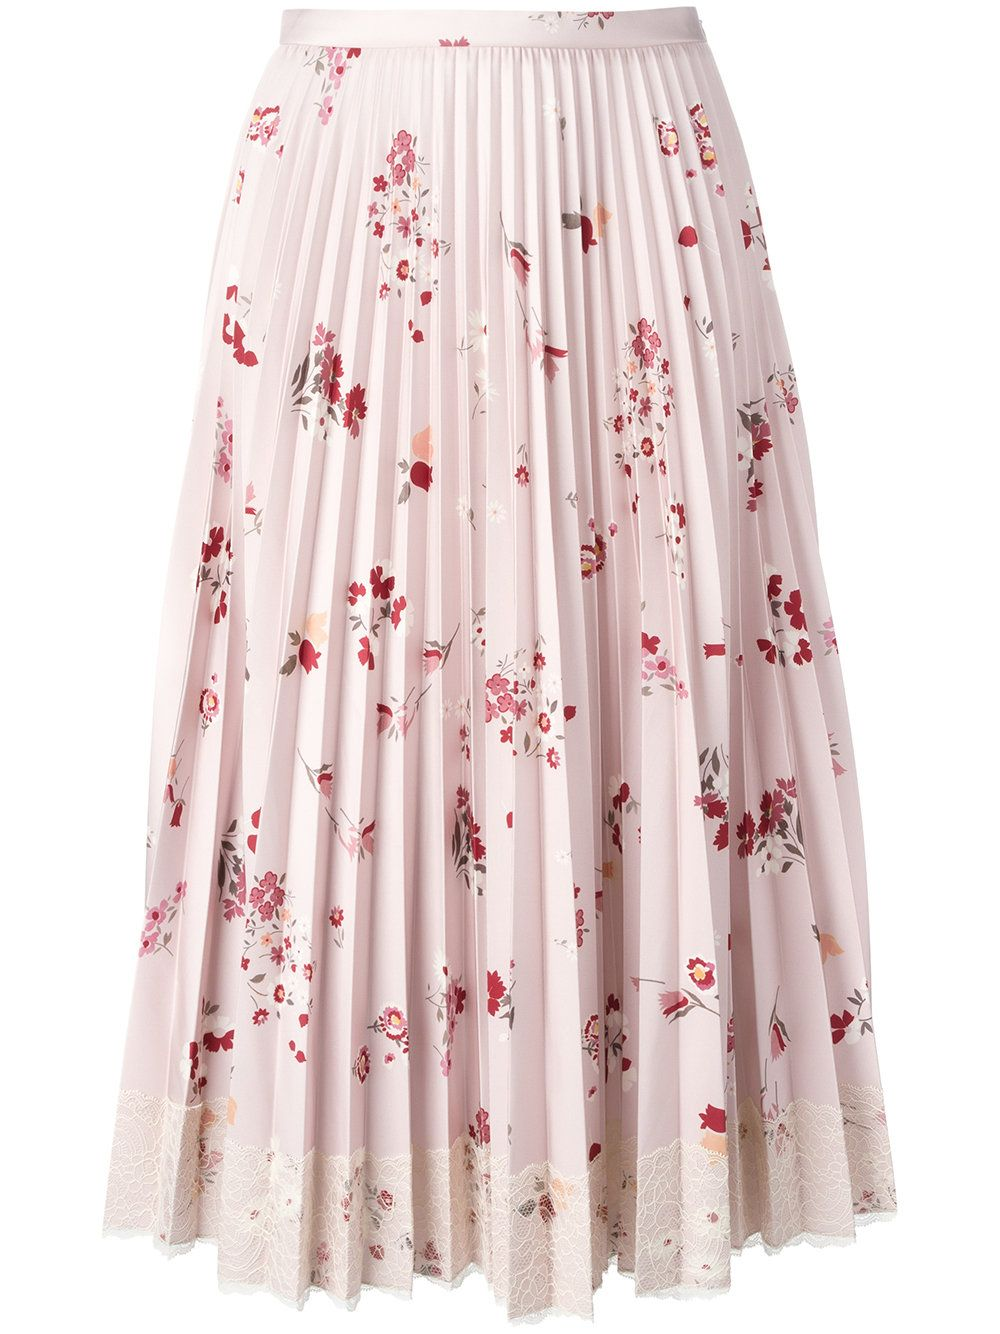 ca82bff8eb7a91 Red Valentino floral print pleated skirt with lace fringe | Long ...